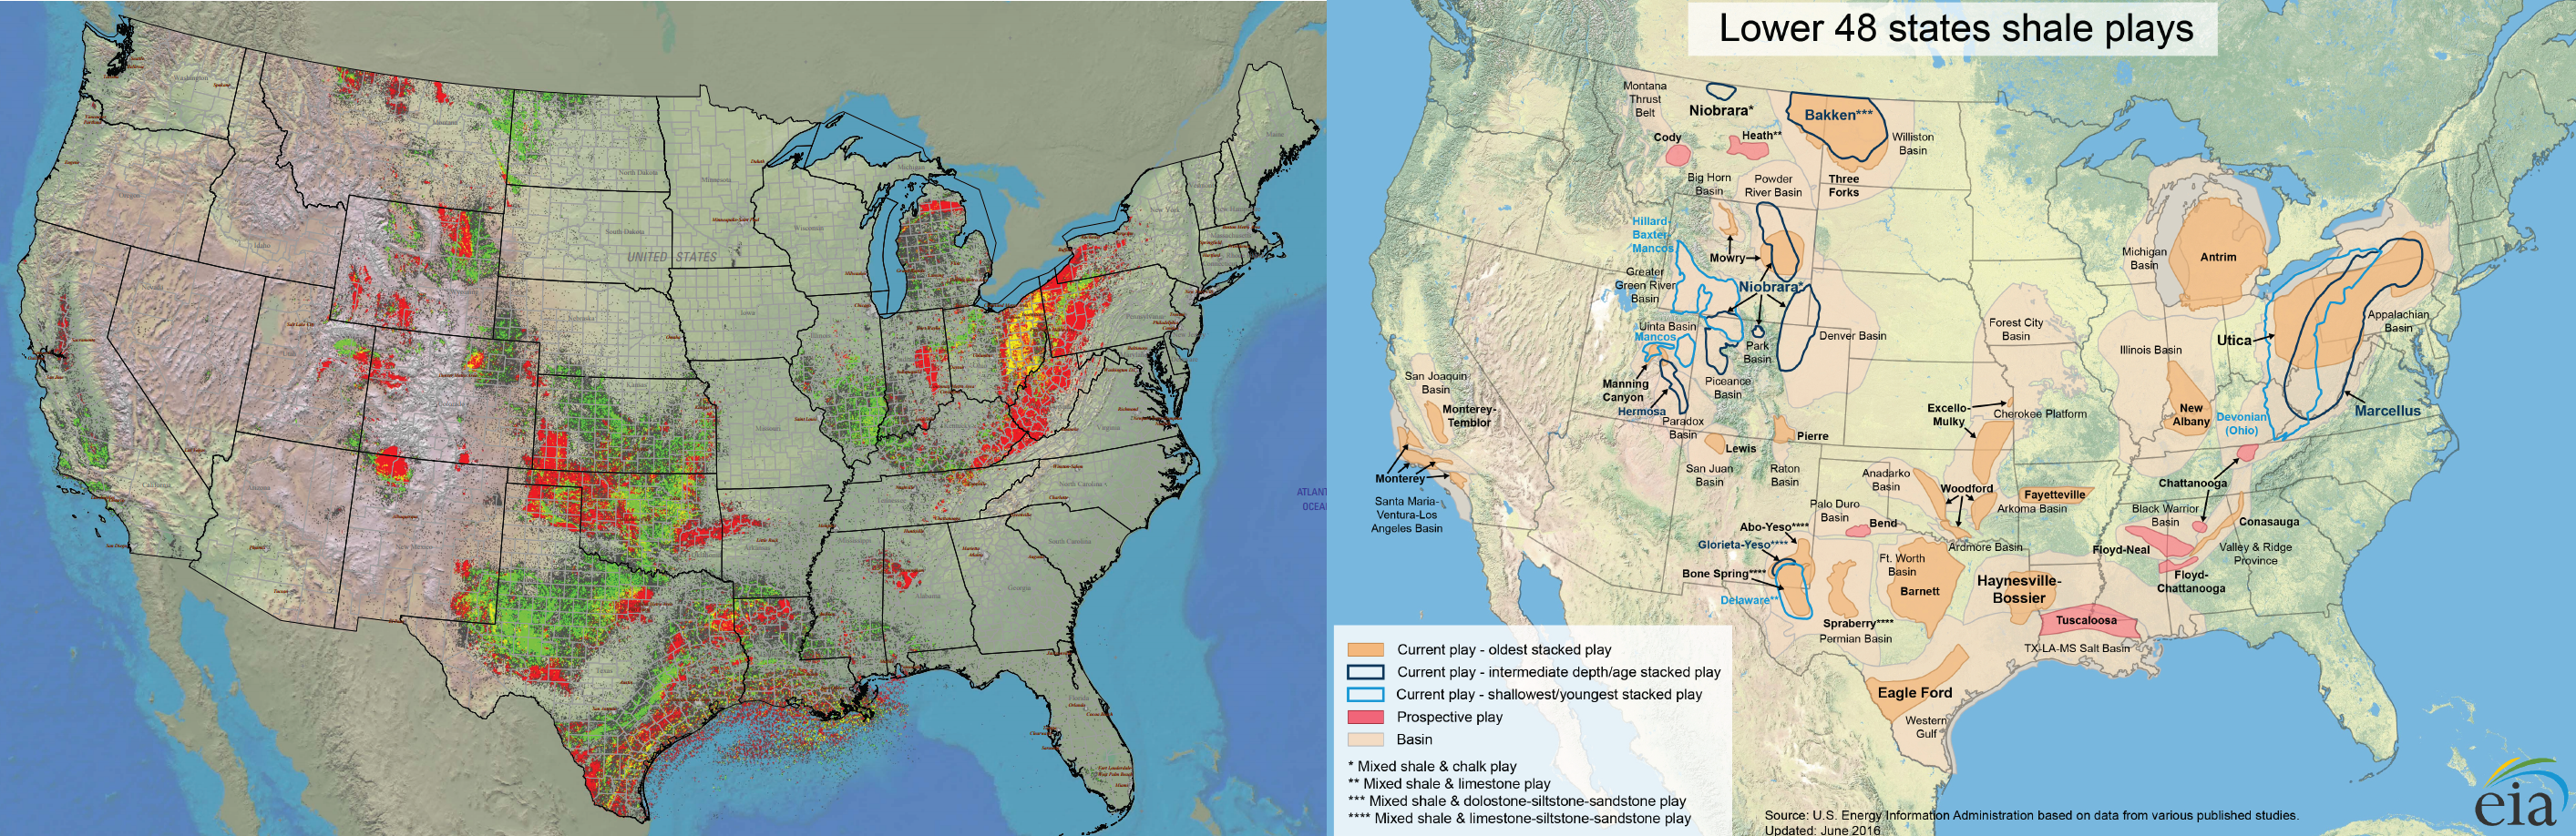 Left: Areas of historical oil, gas, or mixed production in the contiguous United States as of 2005 (immediately prior to the shale boom). Right: Current and prospective shales for oil/gas production, overlain on major sedimentary basins, as of 2016.